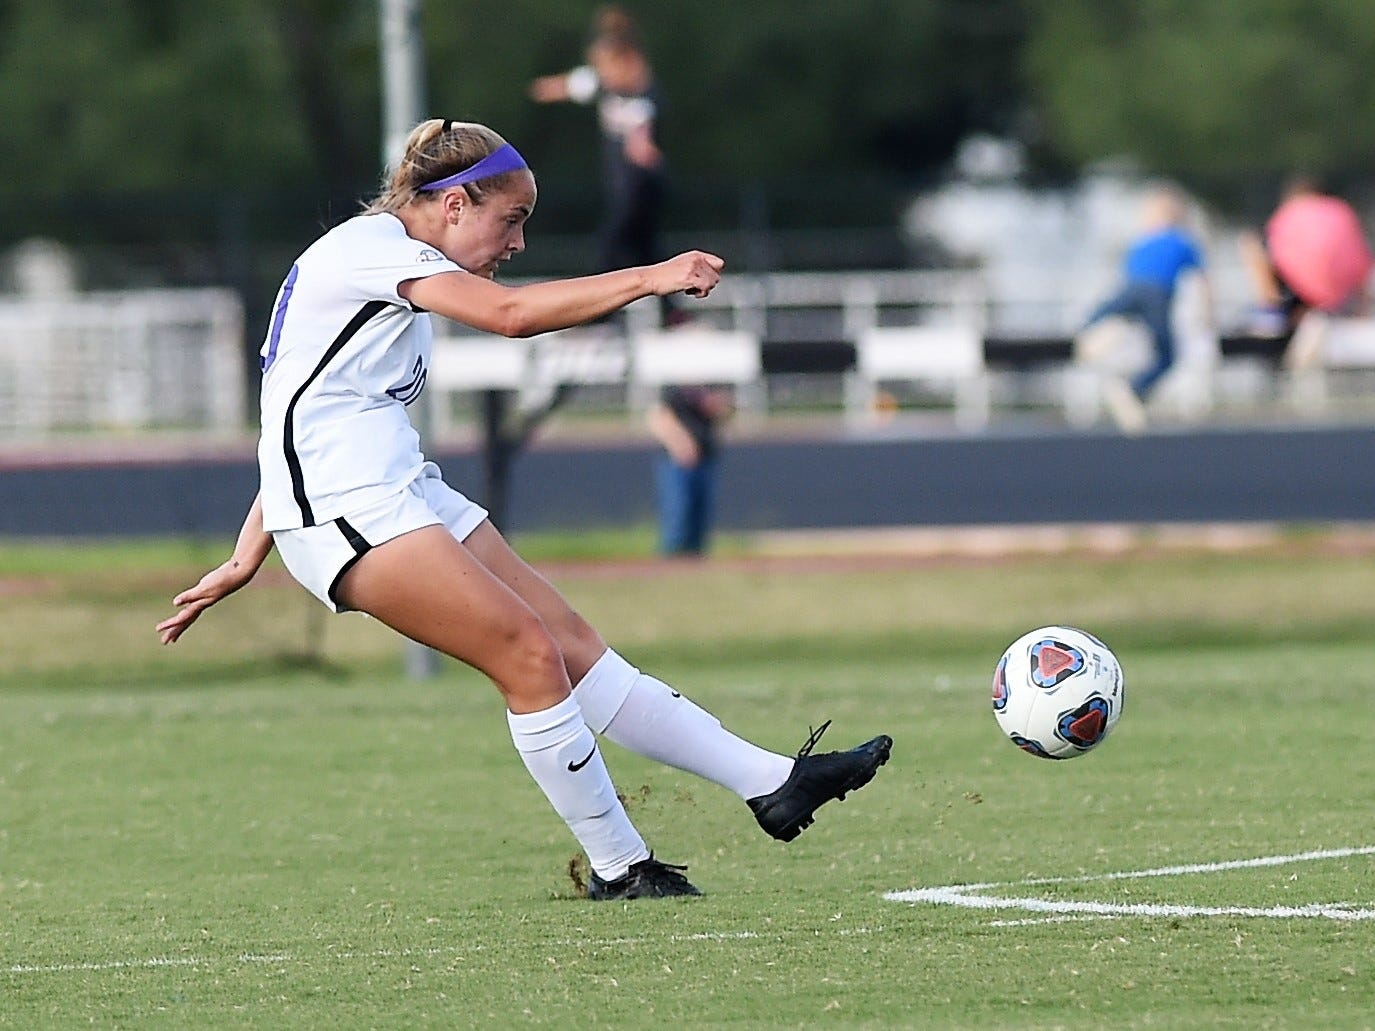 Hardin-Simmons midfielder Mackensie Moreno (30) hits a pass at midfield against Howard Payne at the HSU Soccer Complex on Thursday, Oct. 11, 2018. The Cowgirls won 4-1.